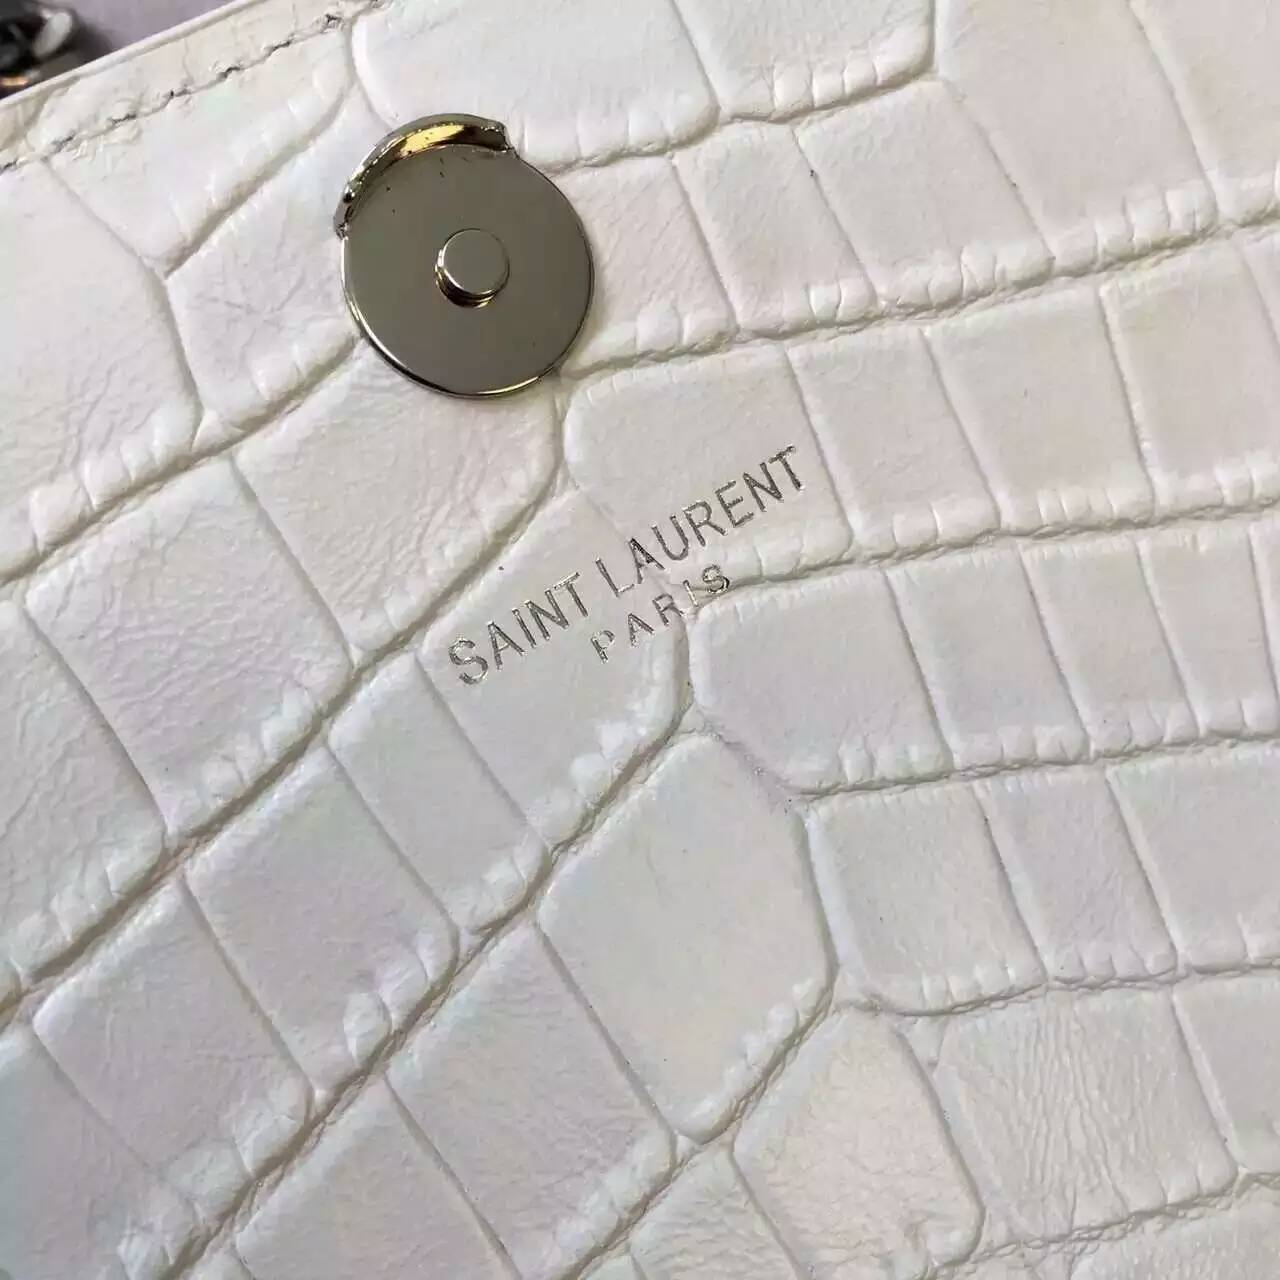 S/S 2016 New Saint Laurent Bag Cheap Sale-Saint Laurent Medium Monogram Satchel in Dove White Crocodile Embossed Leather